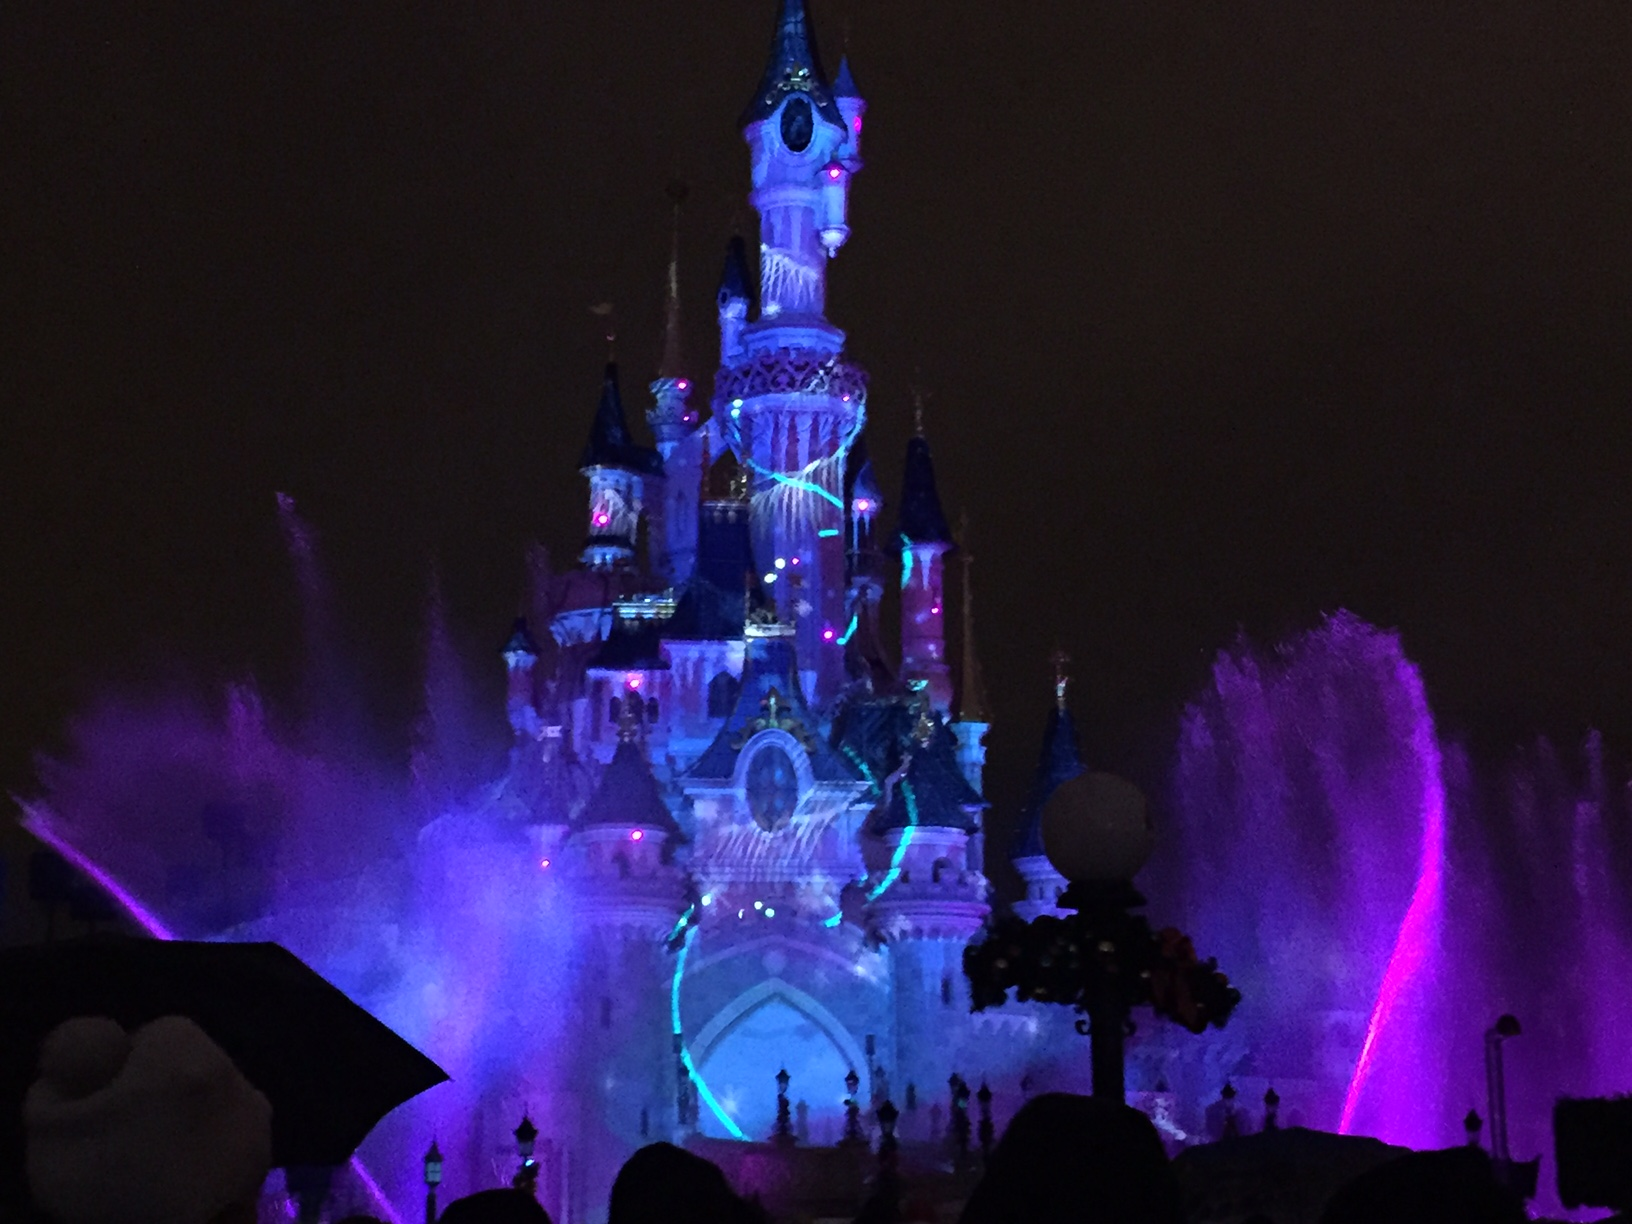 Disneyland Paris Light Show 2015